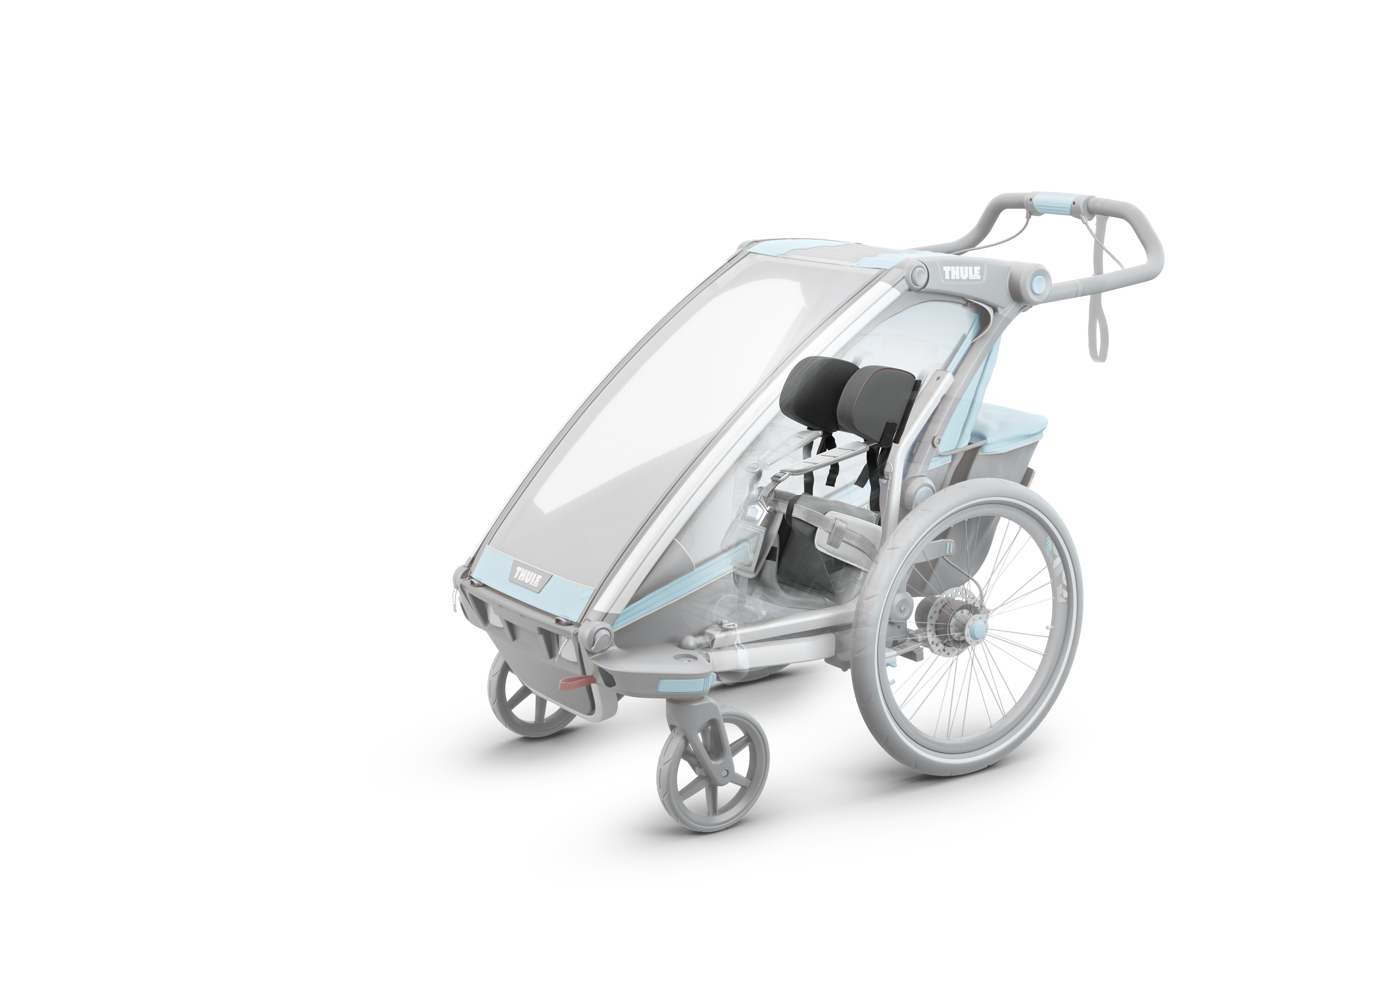 Thule_Chariot_BabySupporter_A02_Installed_20101001